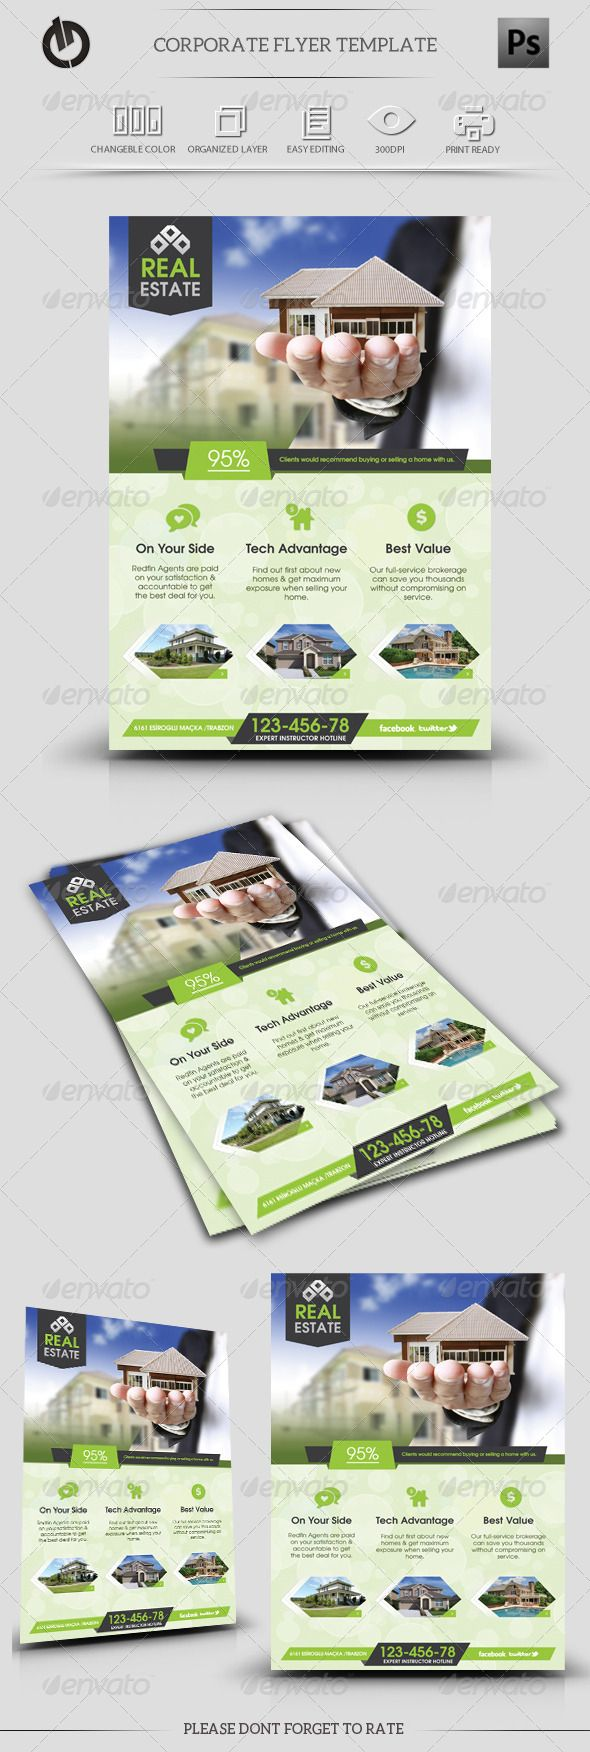 Real Estate Flyer Template — Photoshop PSD #flexible #corporate • Available here → https://graphicriver.net/item/real-estate-flyer-template/5713519?ref=pxcr